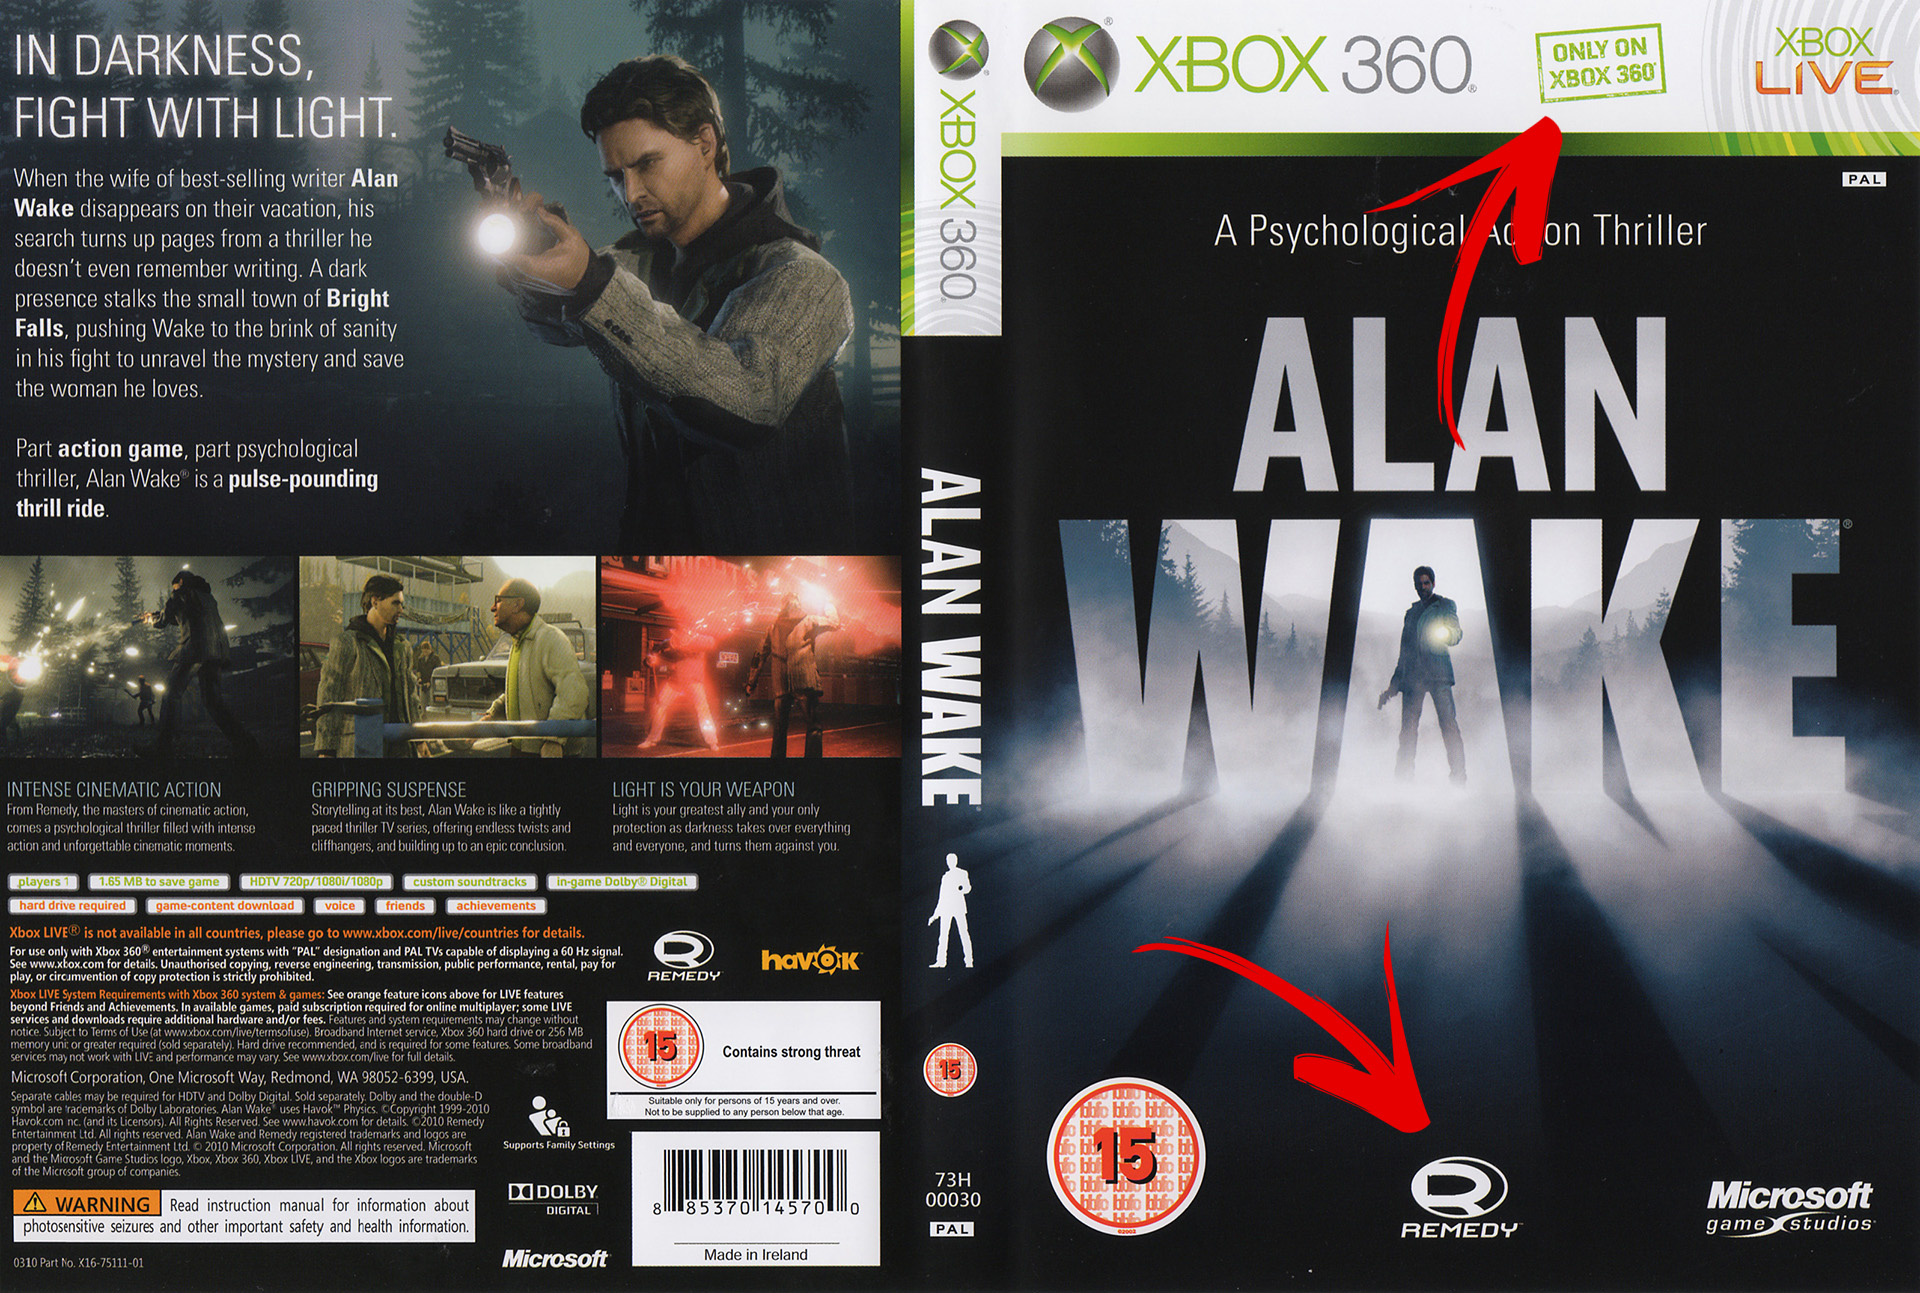 Alan Wake - Only on Xbox 360